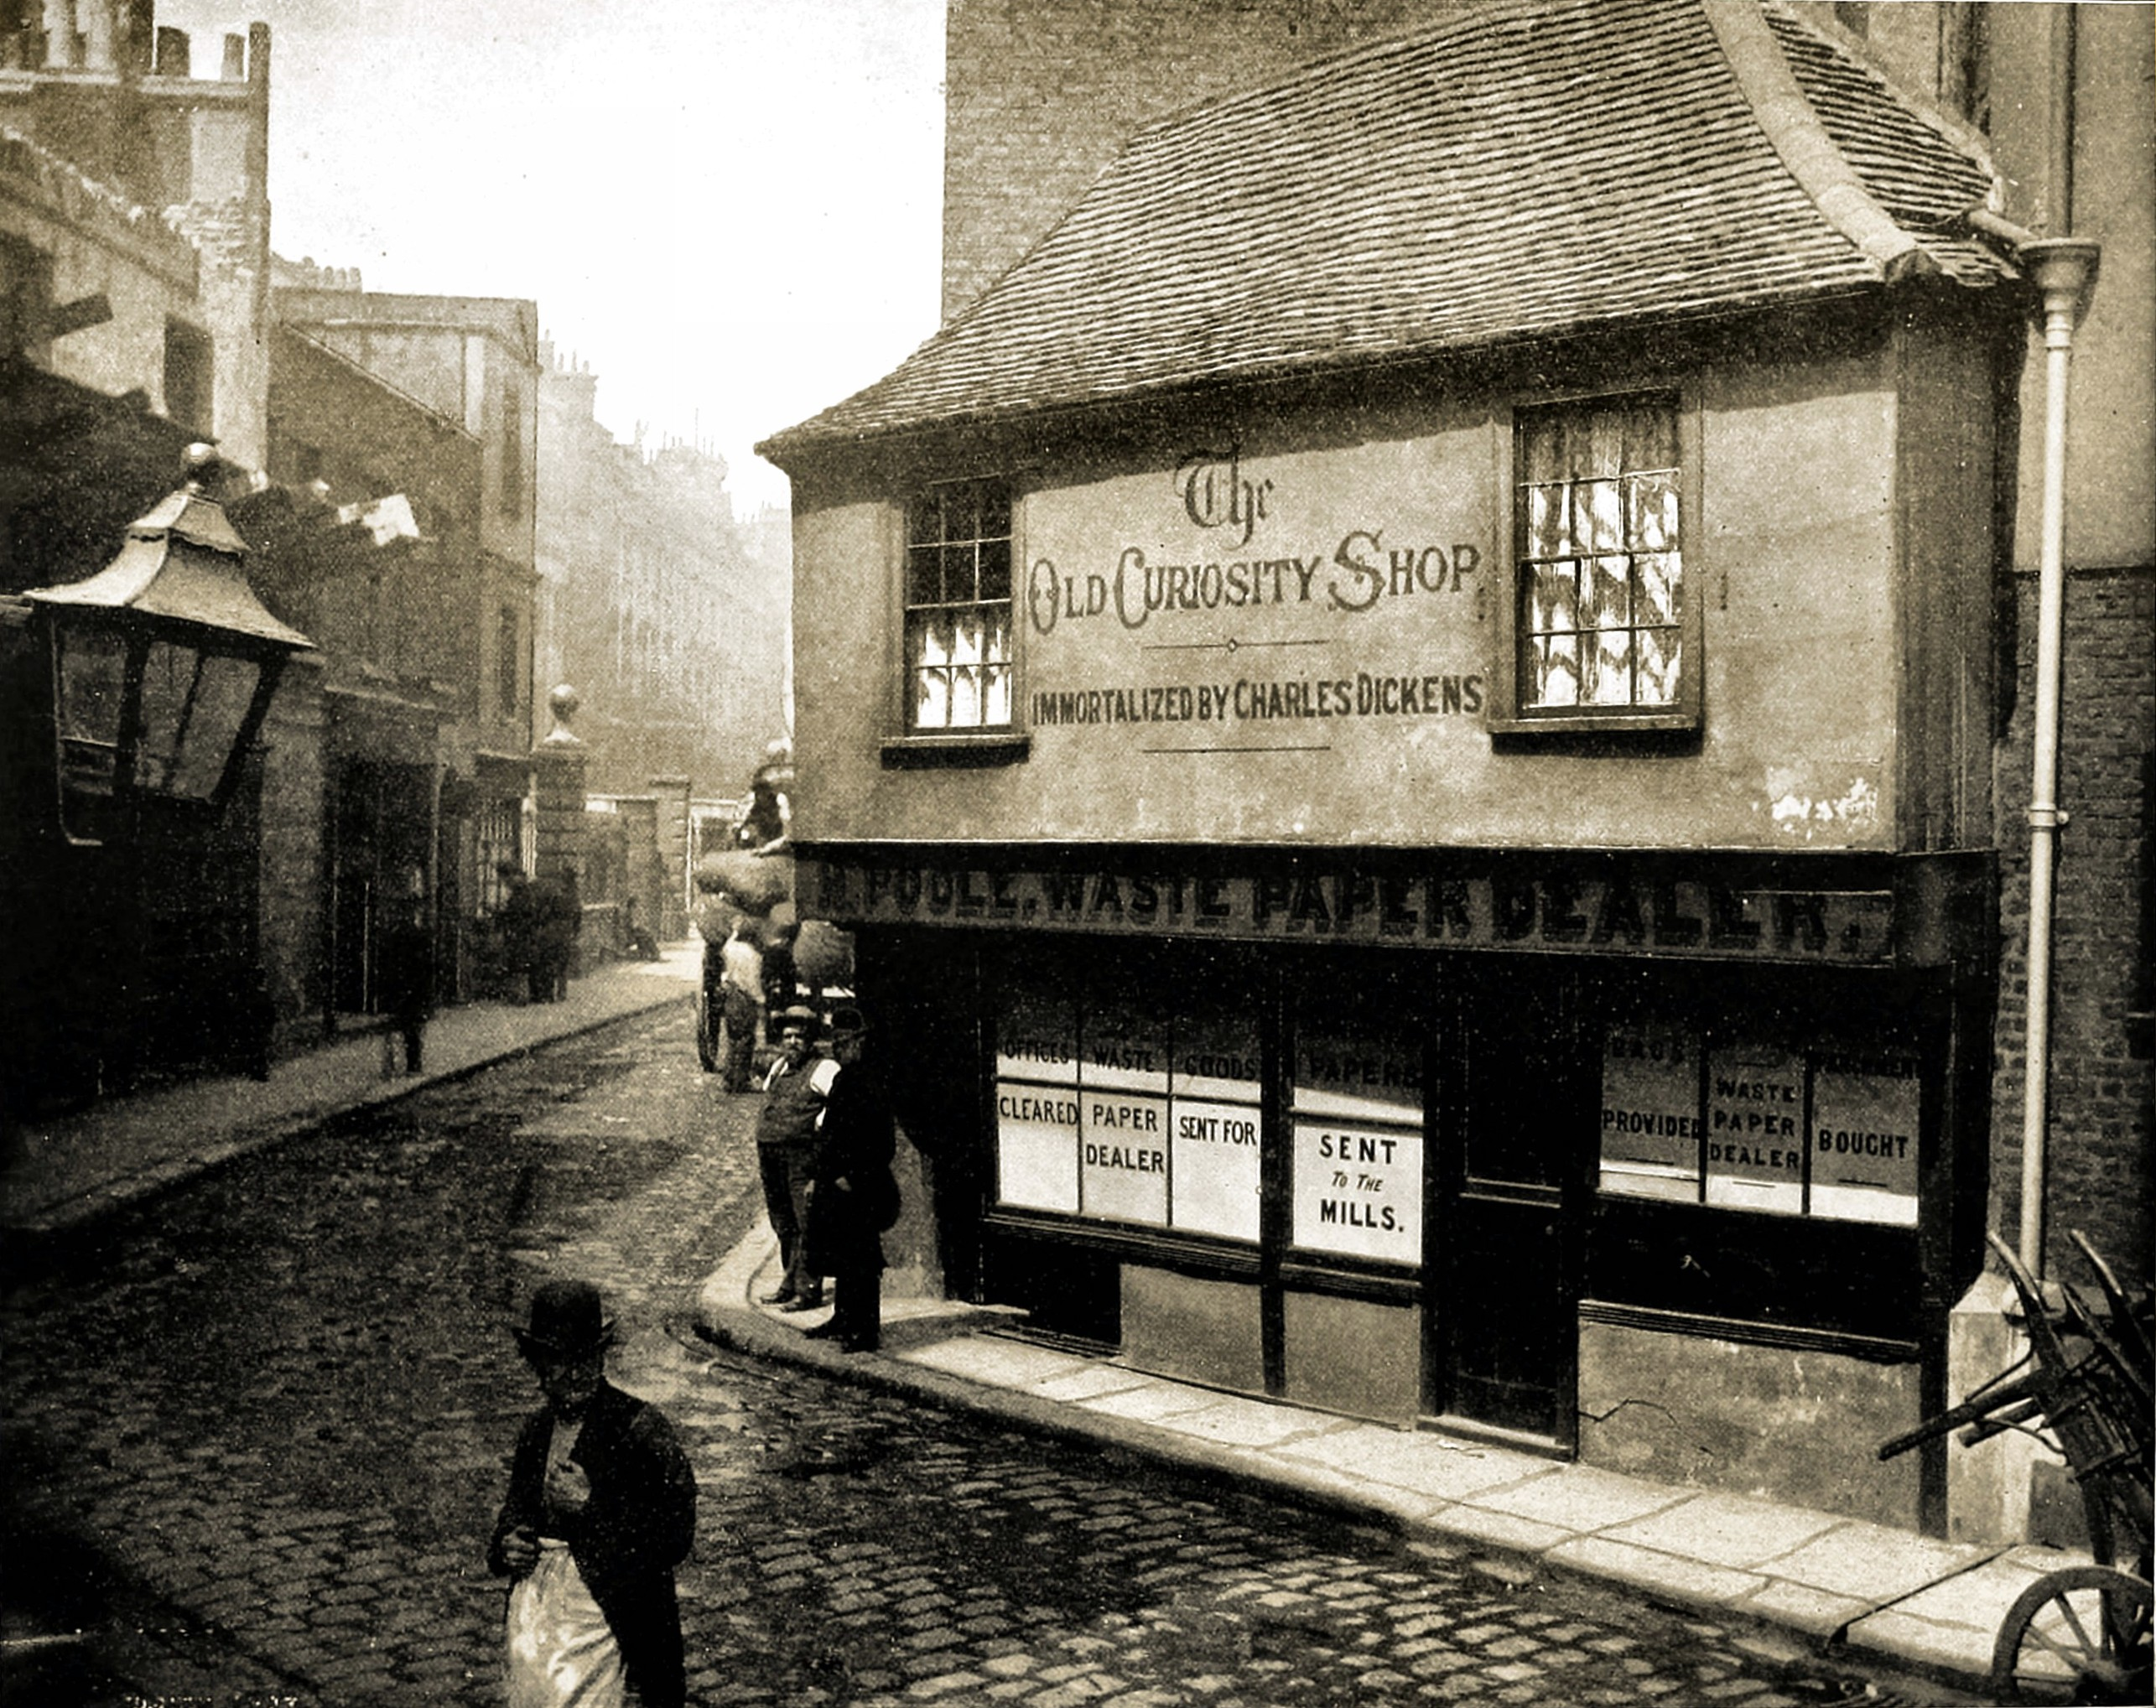 The Old Curiosity Shop, London, England about 1892